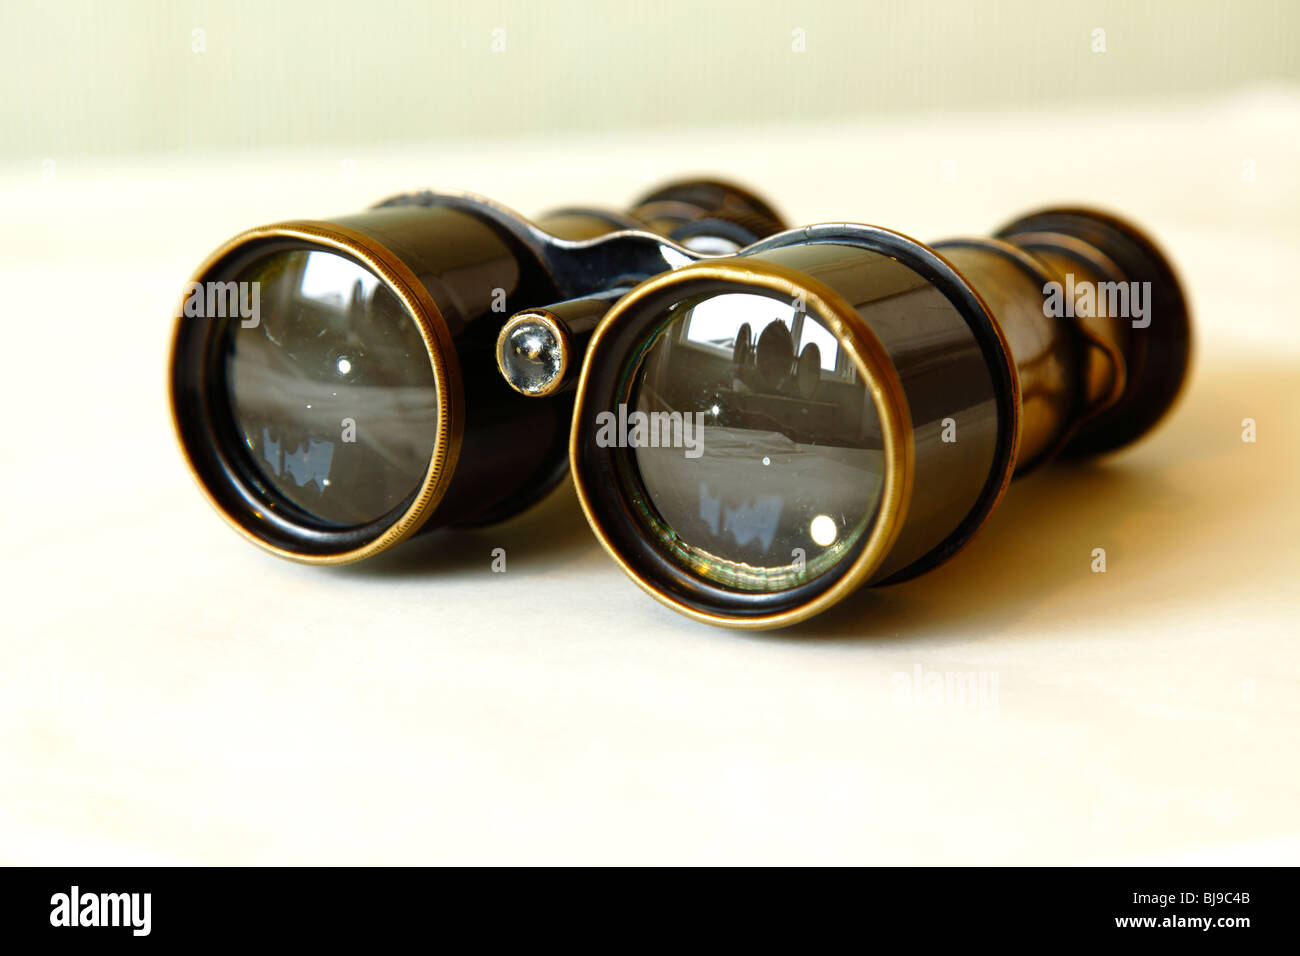 Old brass and steel antique vintage Binoculars or field glasses. - Stock Image